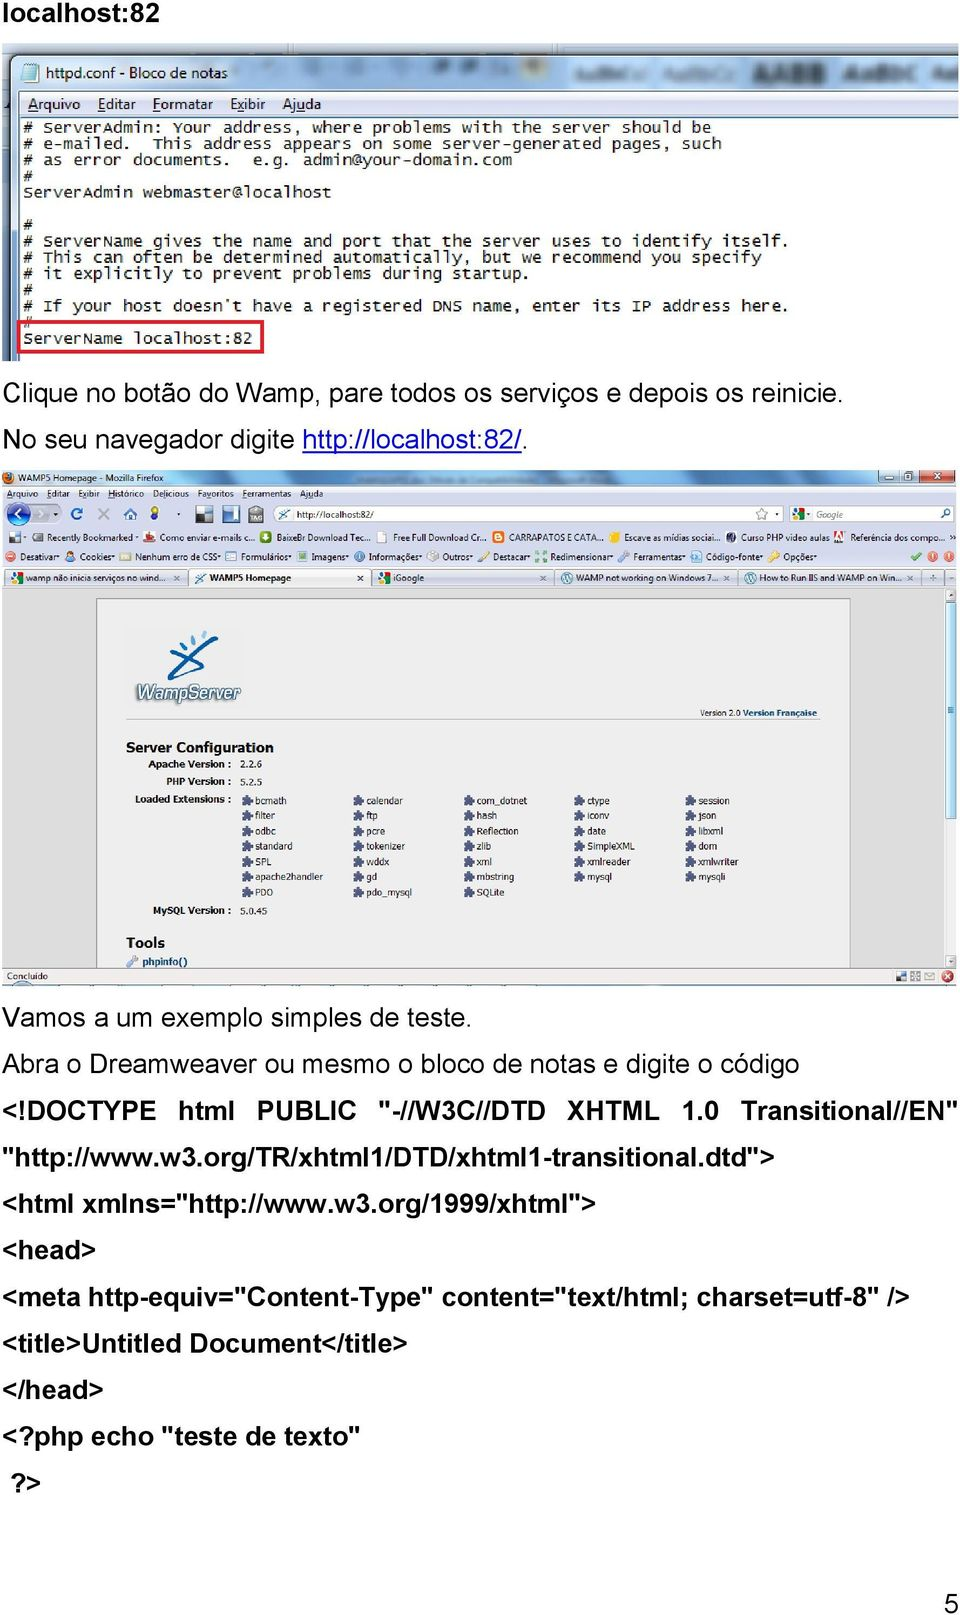 "DOCTYPE html PUBLIC ""-//W3C//DTD XHTML 1.0 Transitional//EN"" ""http://www.w3.org/tr/xhtml1/dtd/xhtml1-transitional."